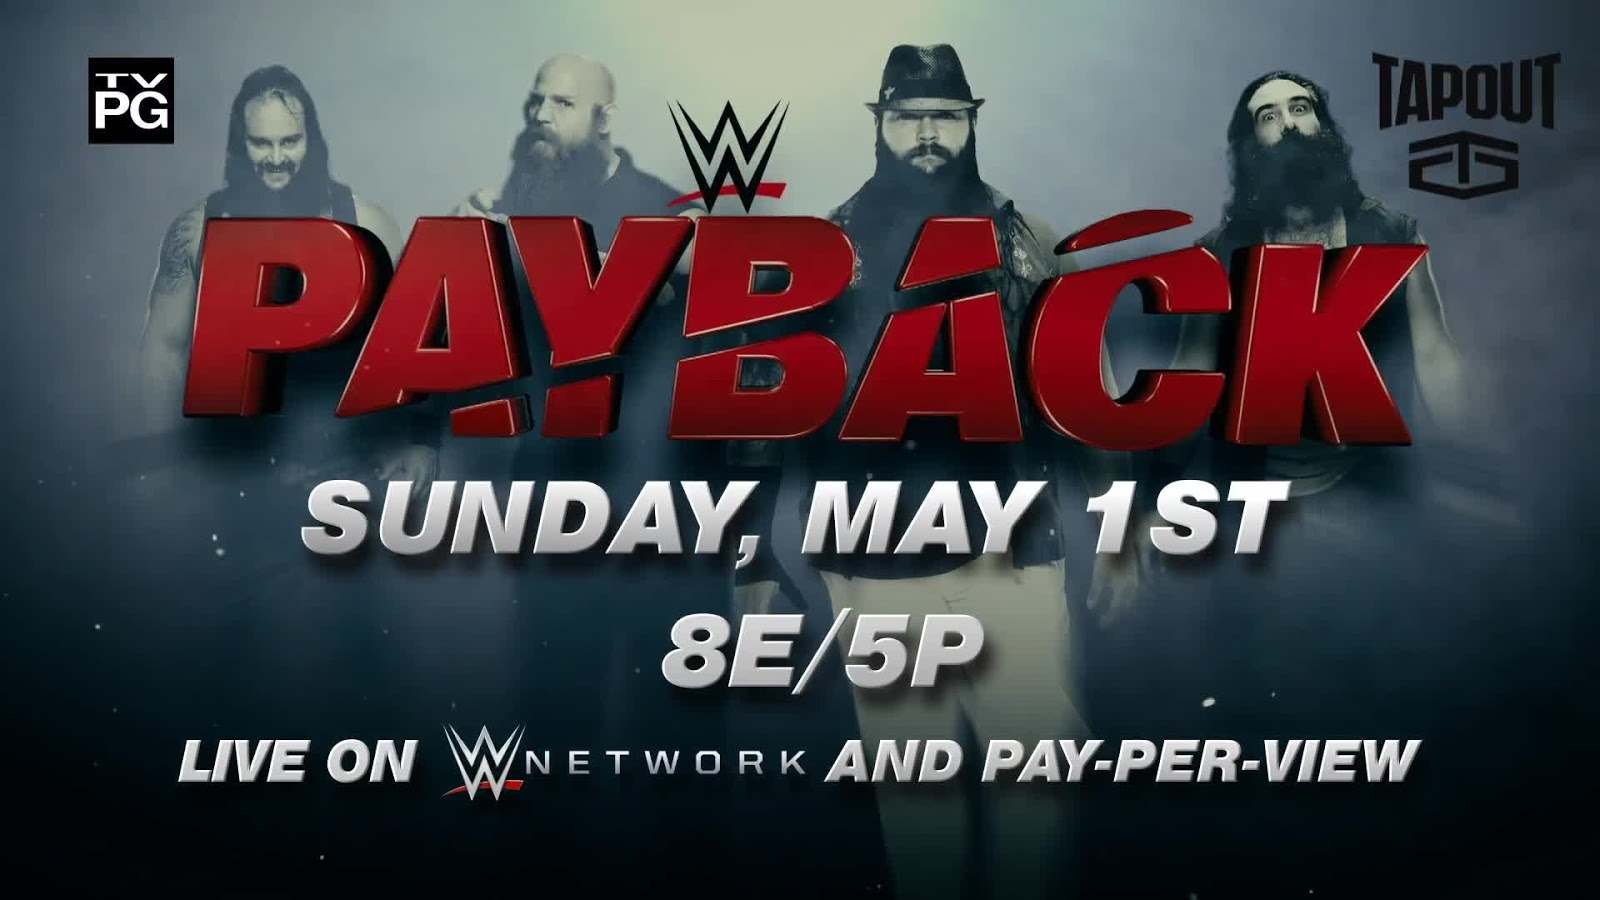 Where can i stream free WWE pay per views?